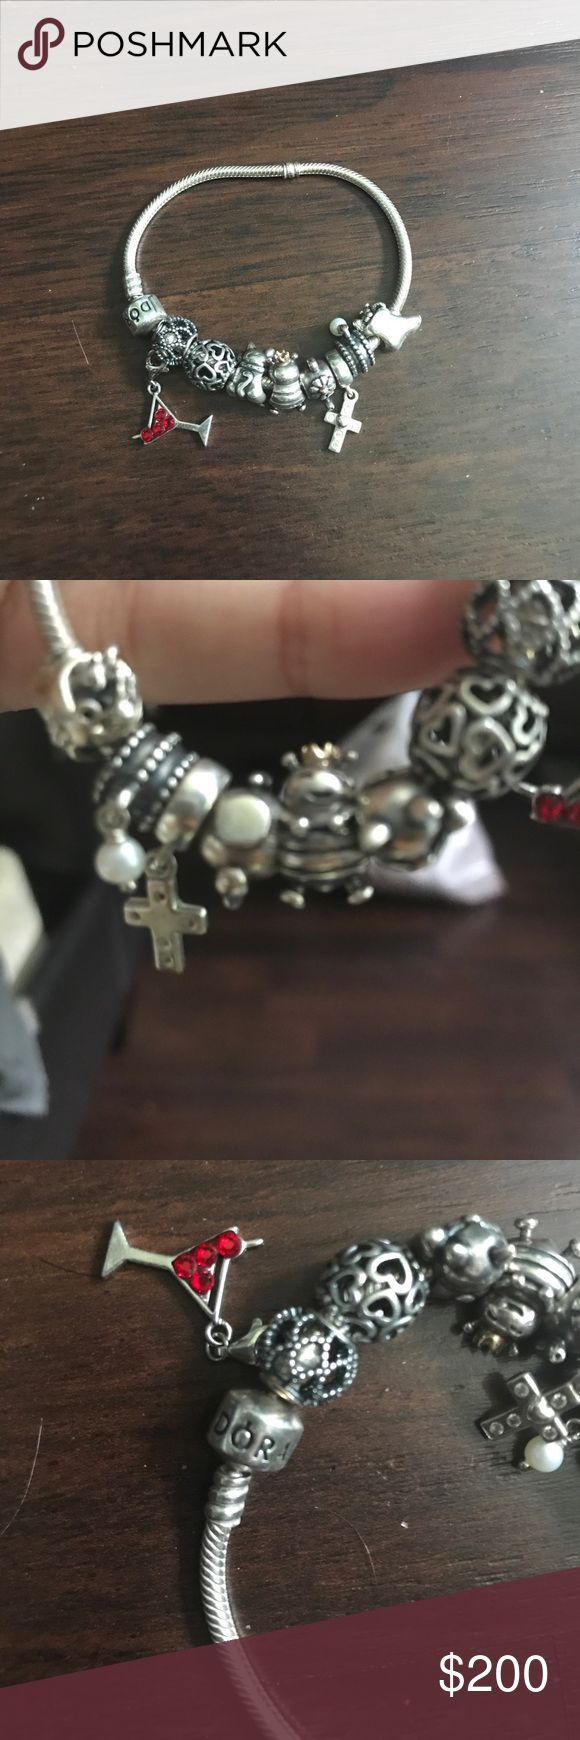 Preowned, like new pandora bracelet Like new pandora sterling silver bracelet with assorted charms: martini glass, heart, queen bee, teapot, cross, pearl, cat and Christmas stocking beads Pandora Jewelry Bracelets